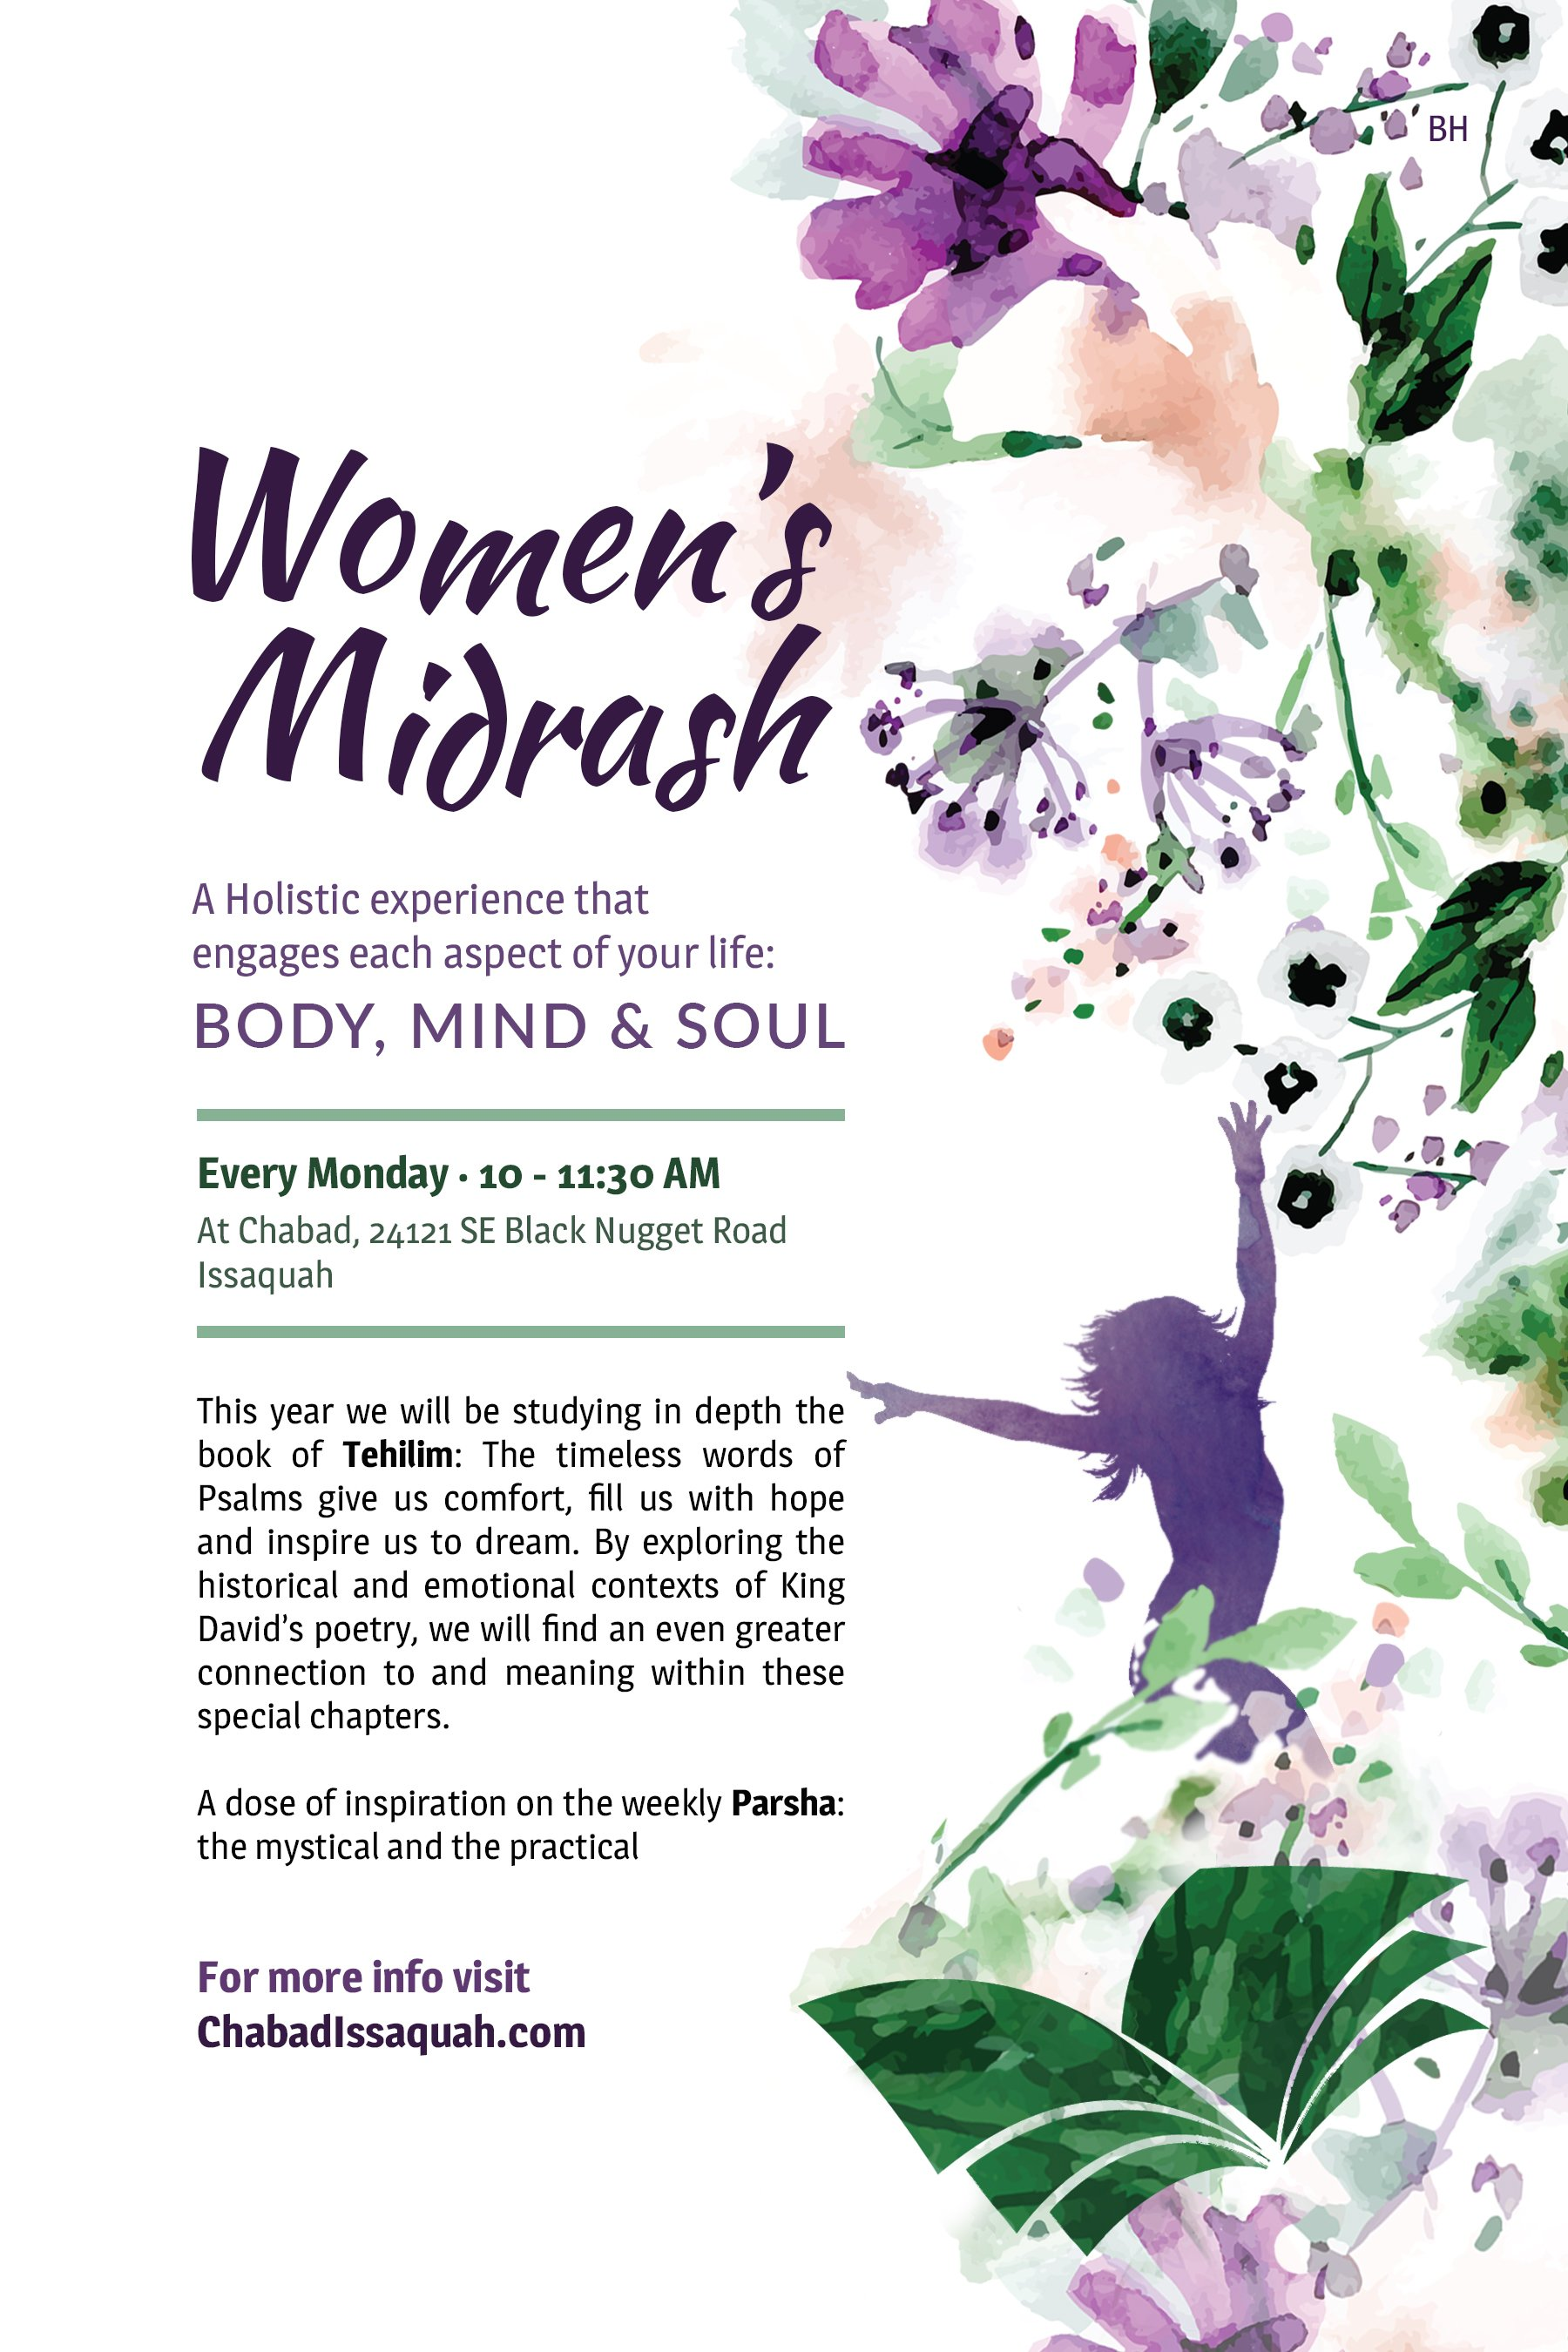 Women's Midrash 2019 - 20.jpg